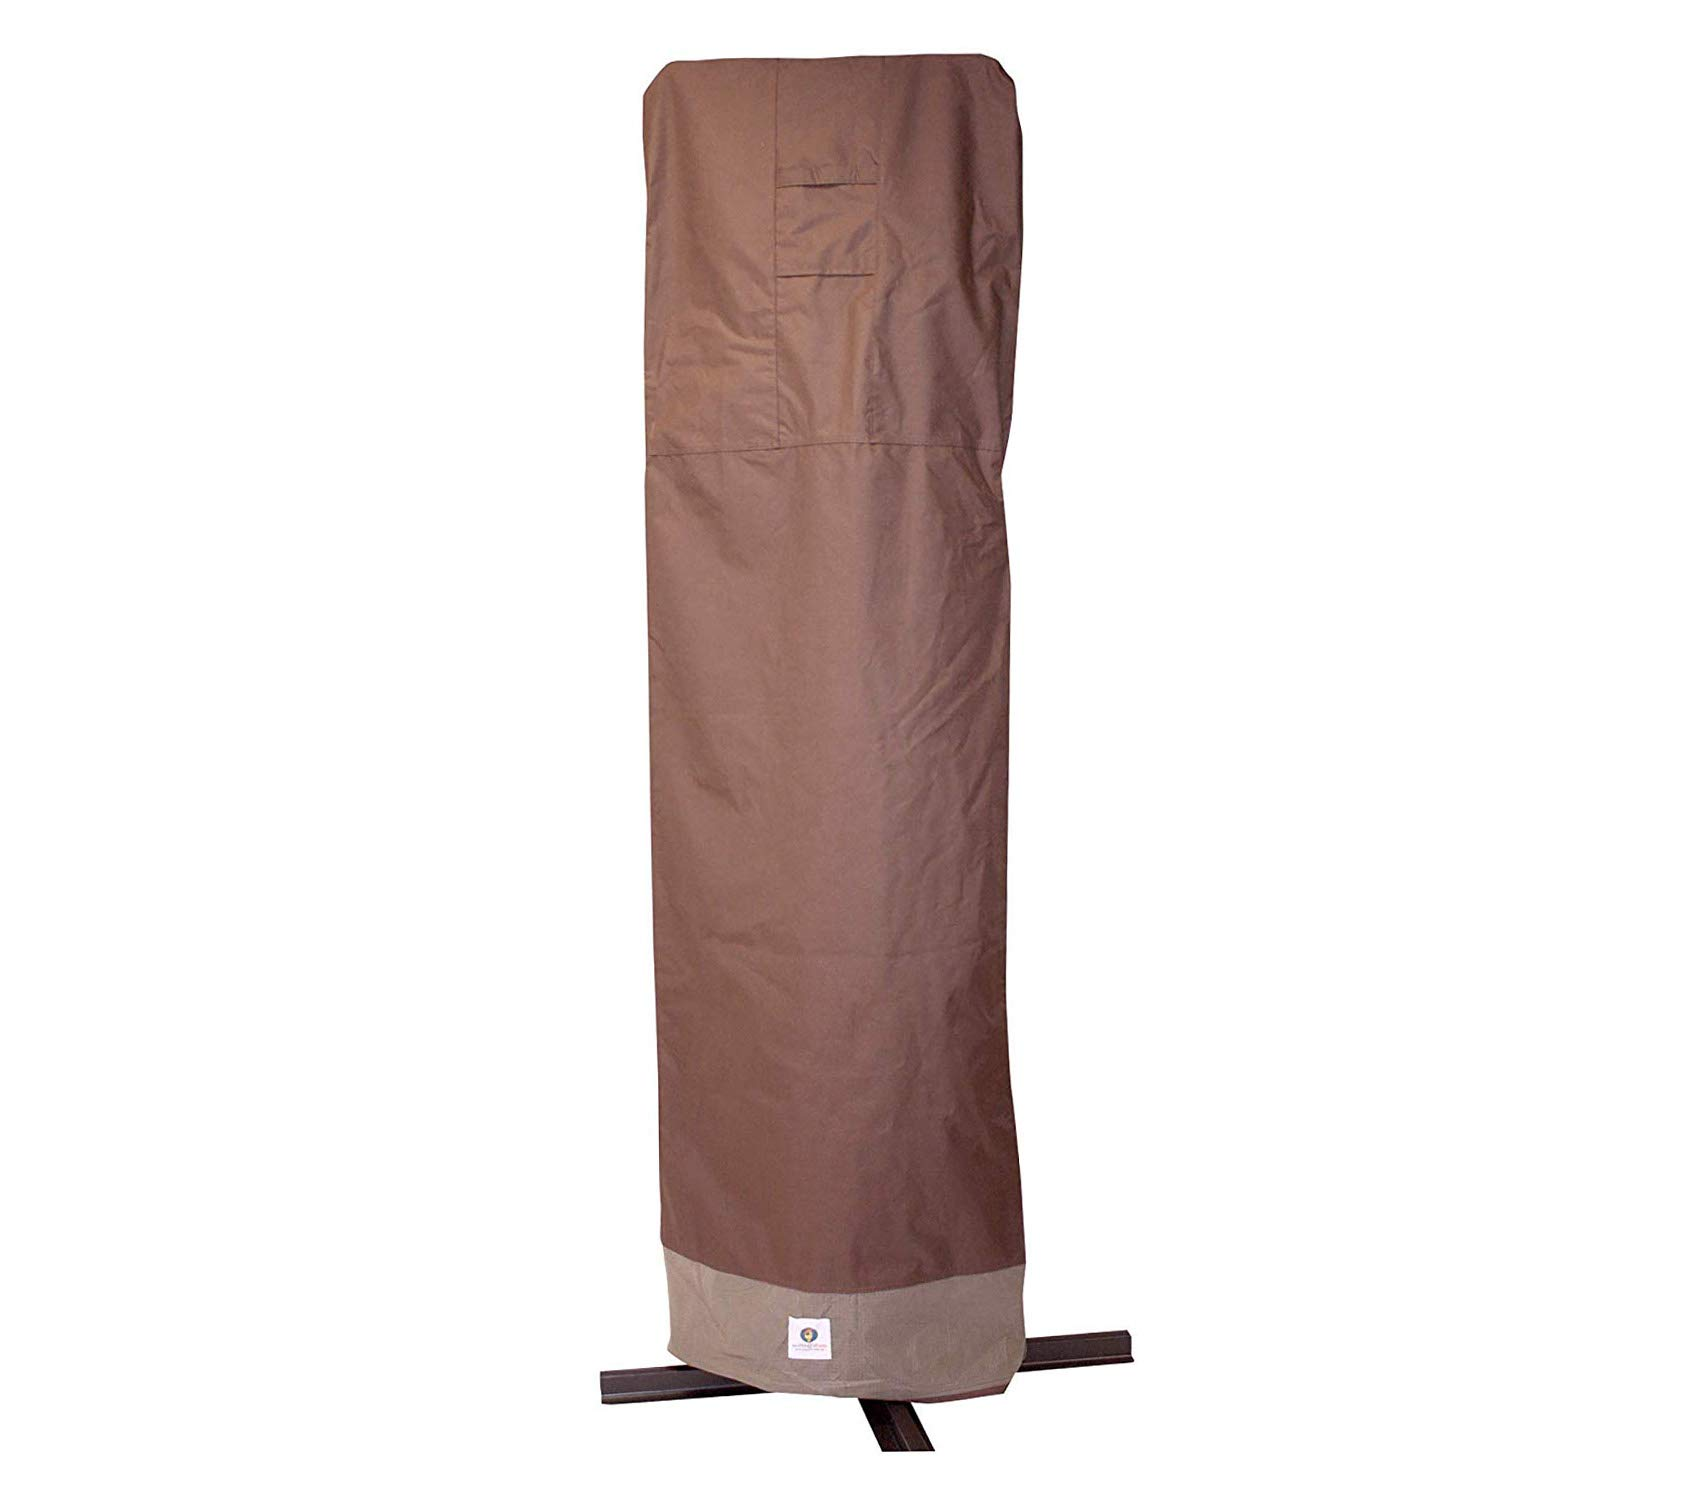 Wood & Style Patio Outdoor Garden Premium Ultimate Offset Patio Umbrella Cover with Installation Pole